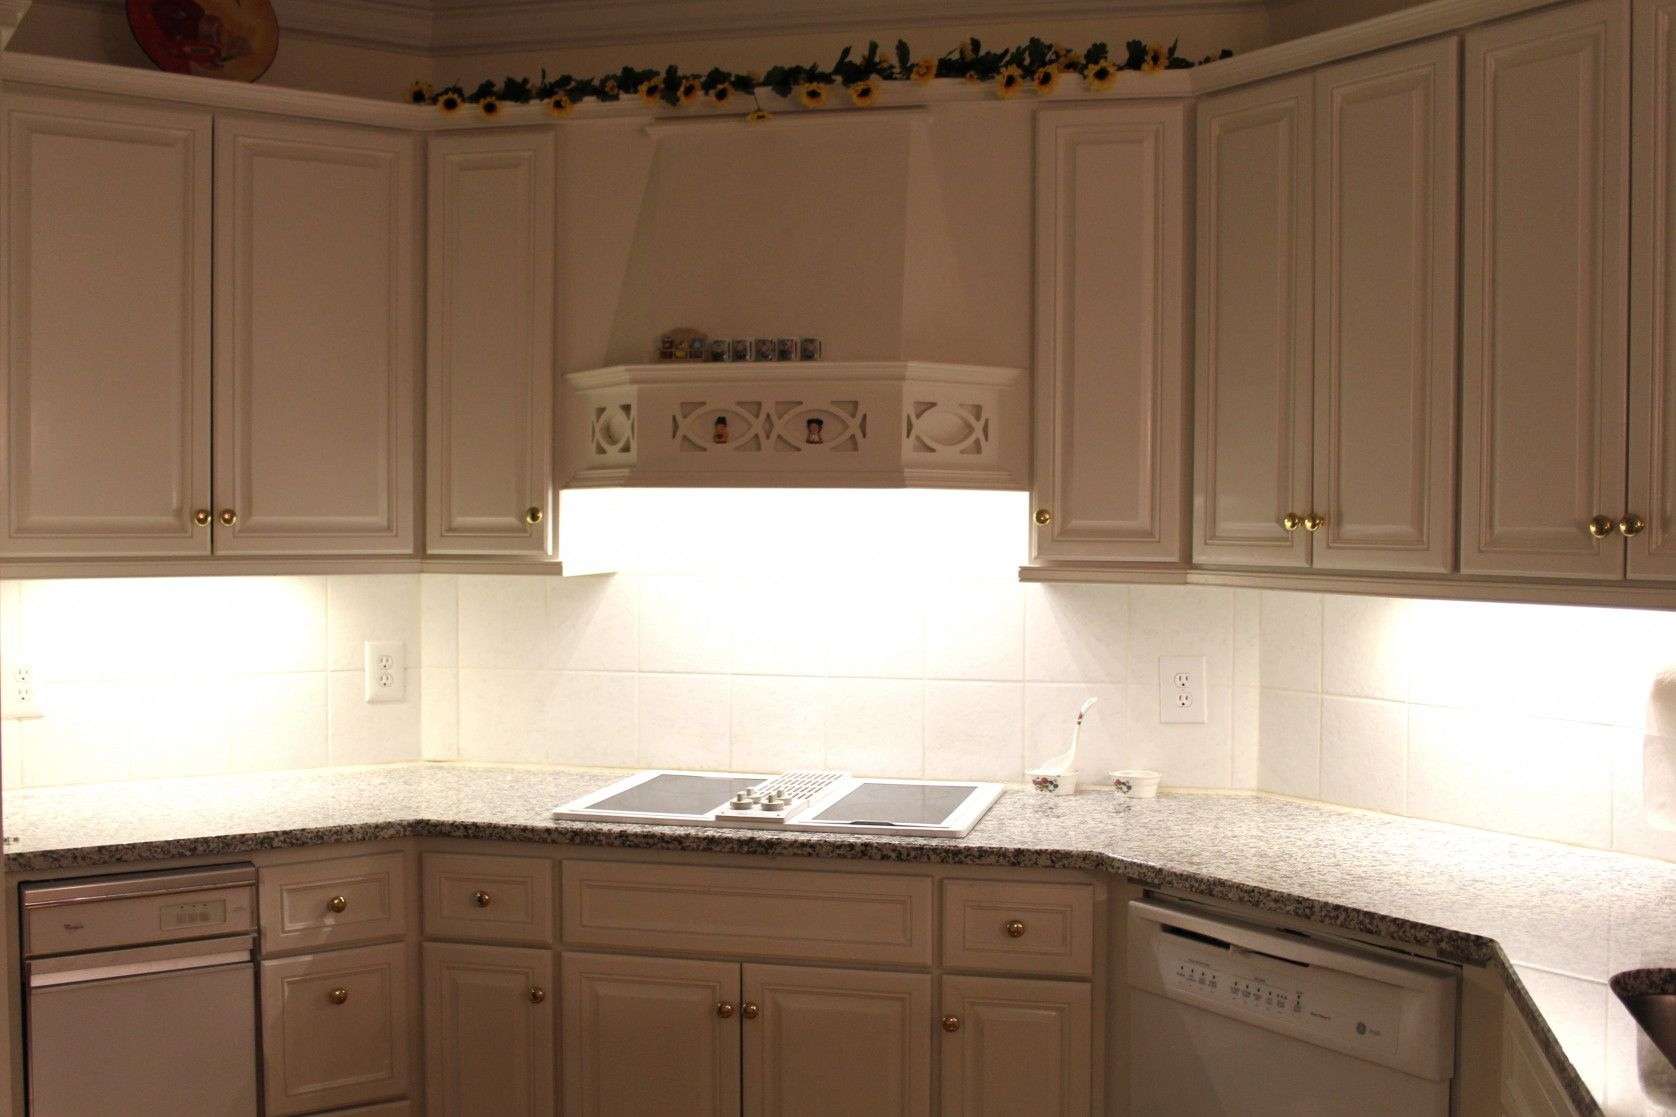 50 Under Cabinet Led Rope Lighting Kitchen Shelf Display Ideas Check More At Kitchen Under Cabinet Lighting Kitchen Cabinet Interior Light Kitchen Cabinets